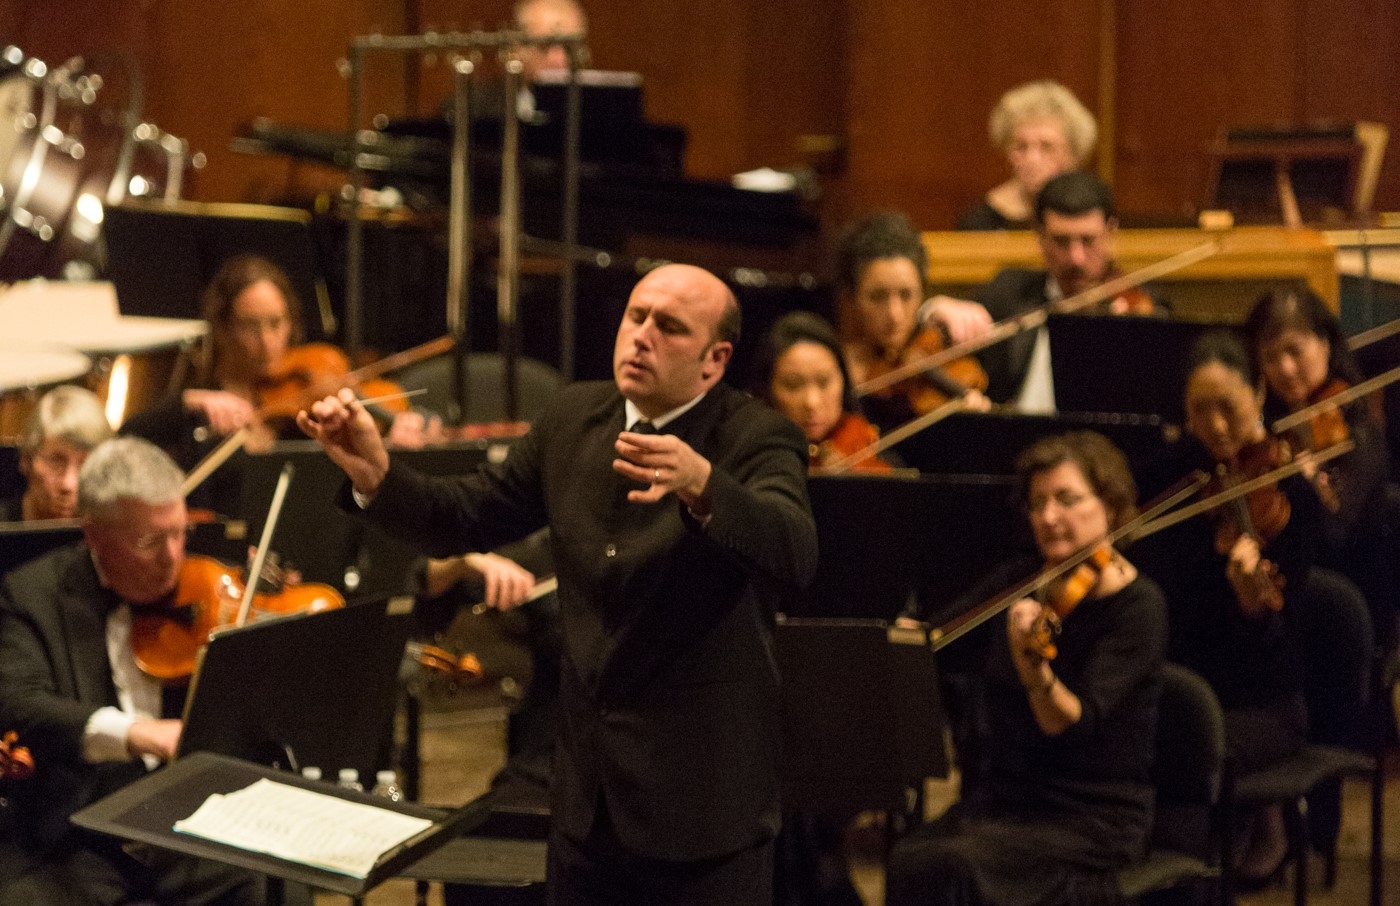 ARTS IN ACTION: Italian conductor RICCARDO FRIZZA, débuting at Lyric Opera of Chicago in Vincenzo Bellini's NORMA on 28 January 2017 [Photo from the 2013 Richard Tucker Gala © by Dario Acosta]